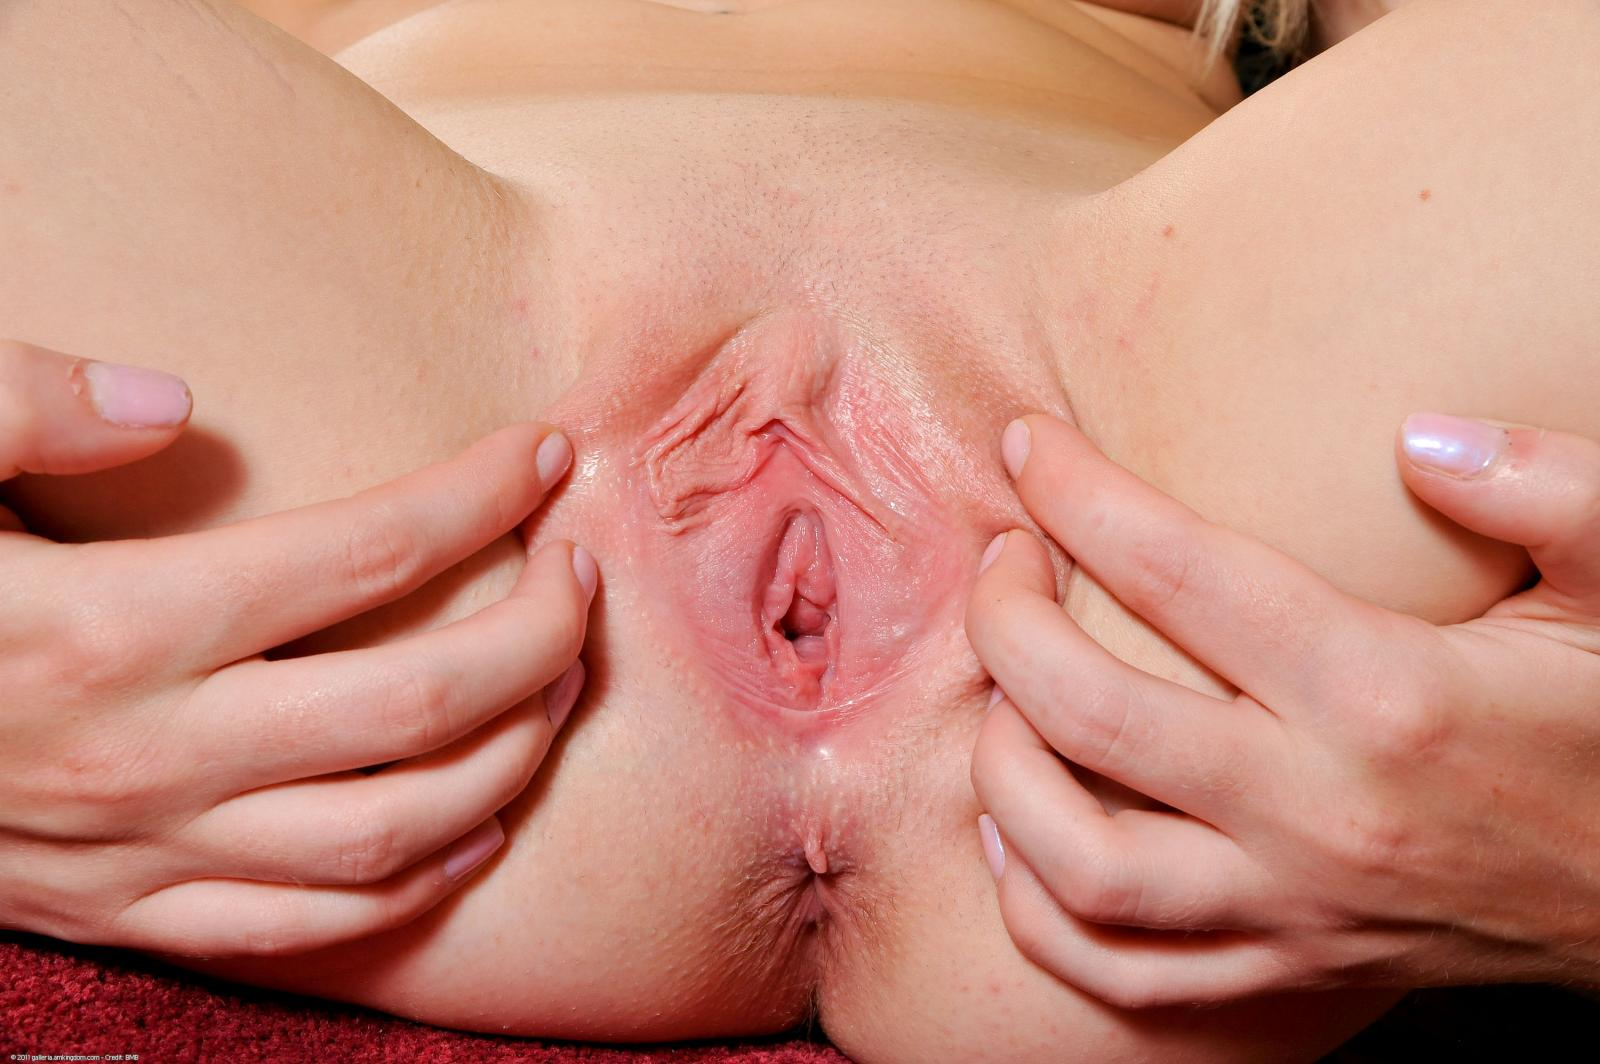 Virgin tight shaved pussy